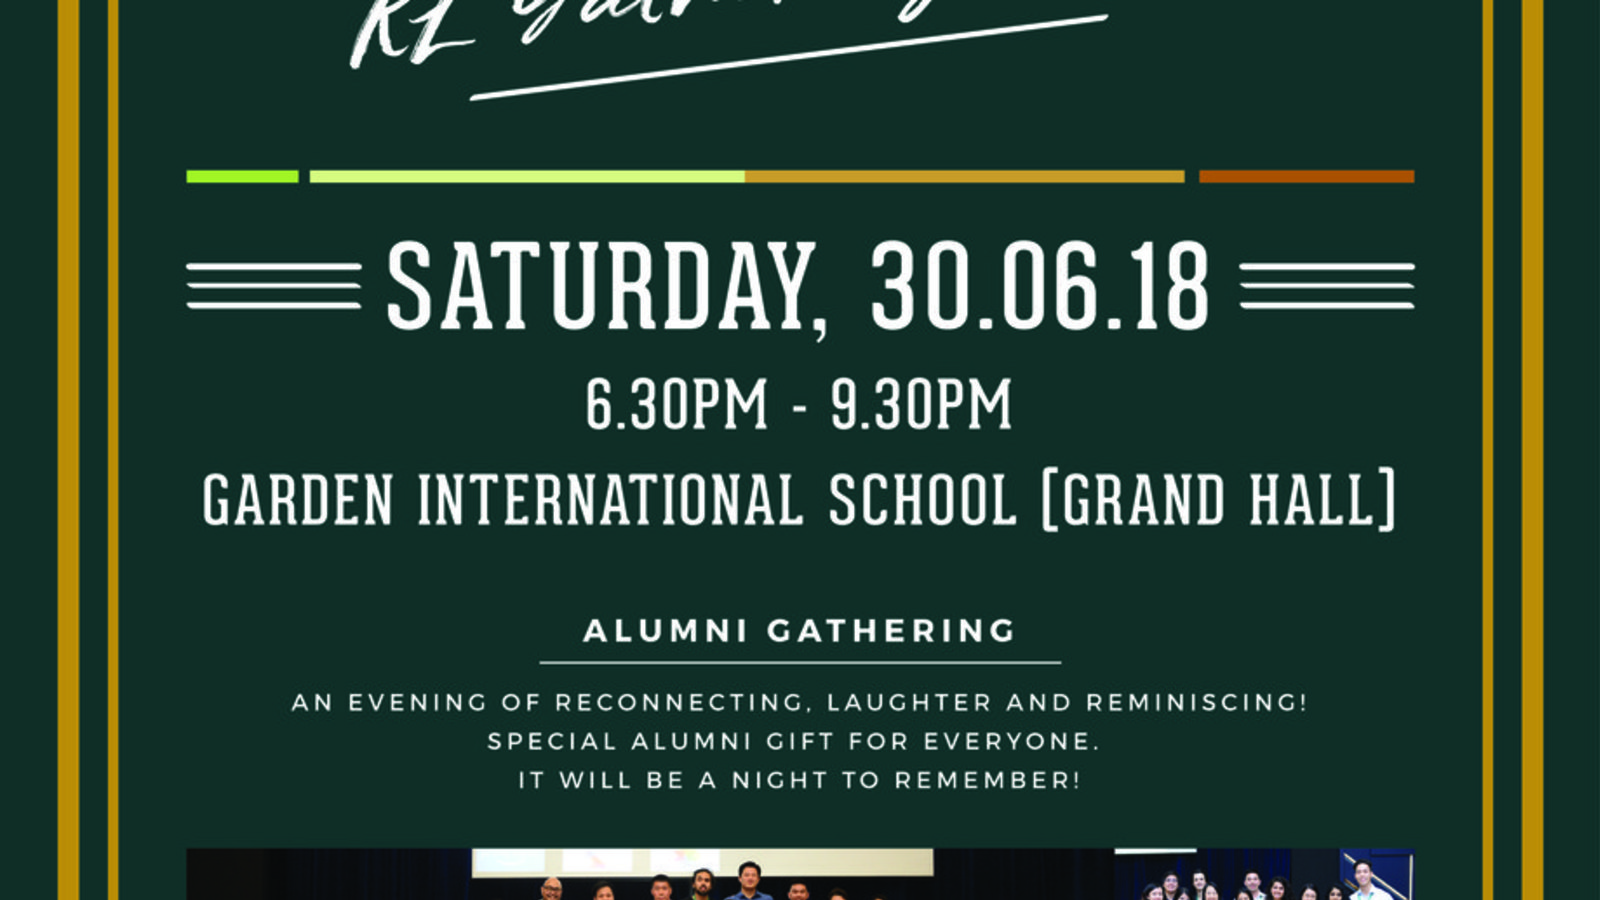 High quality gis alumni kl gathering 2018 e invite faco 01  2